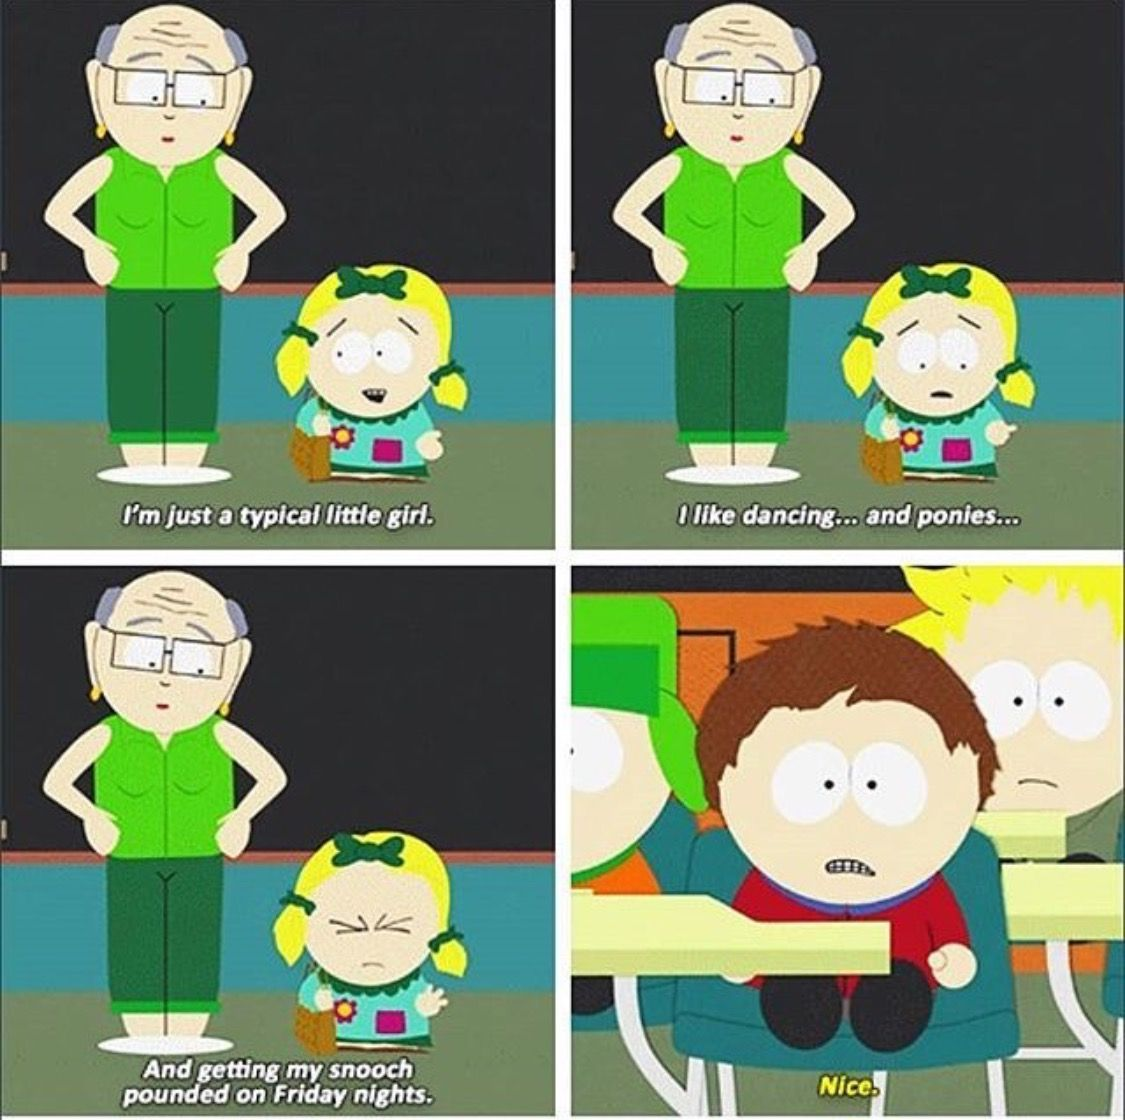 Clyde Wtf Lol That S Amazing Just A Simple Nice South Park Funny South Park Quotes South Park Memes